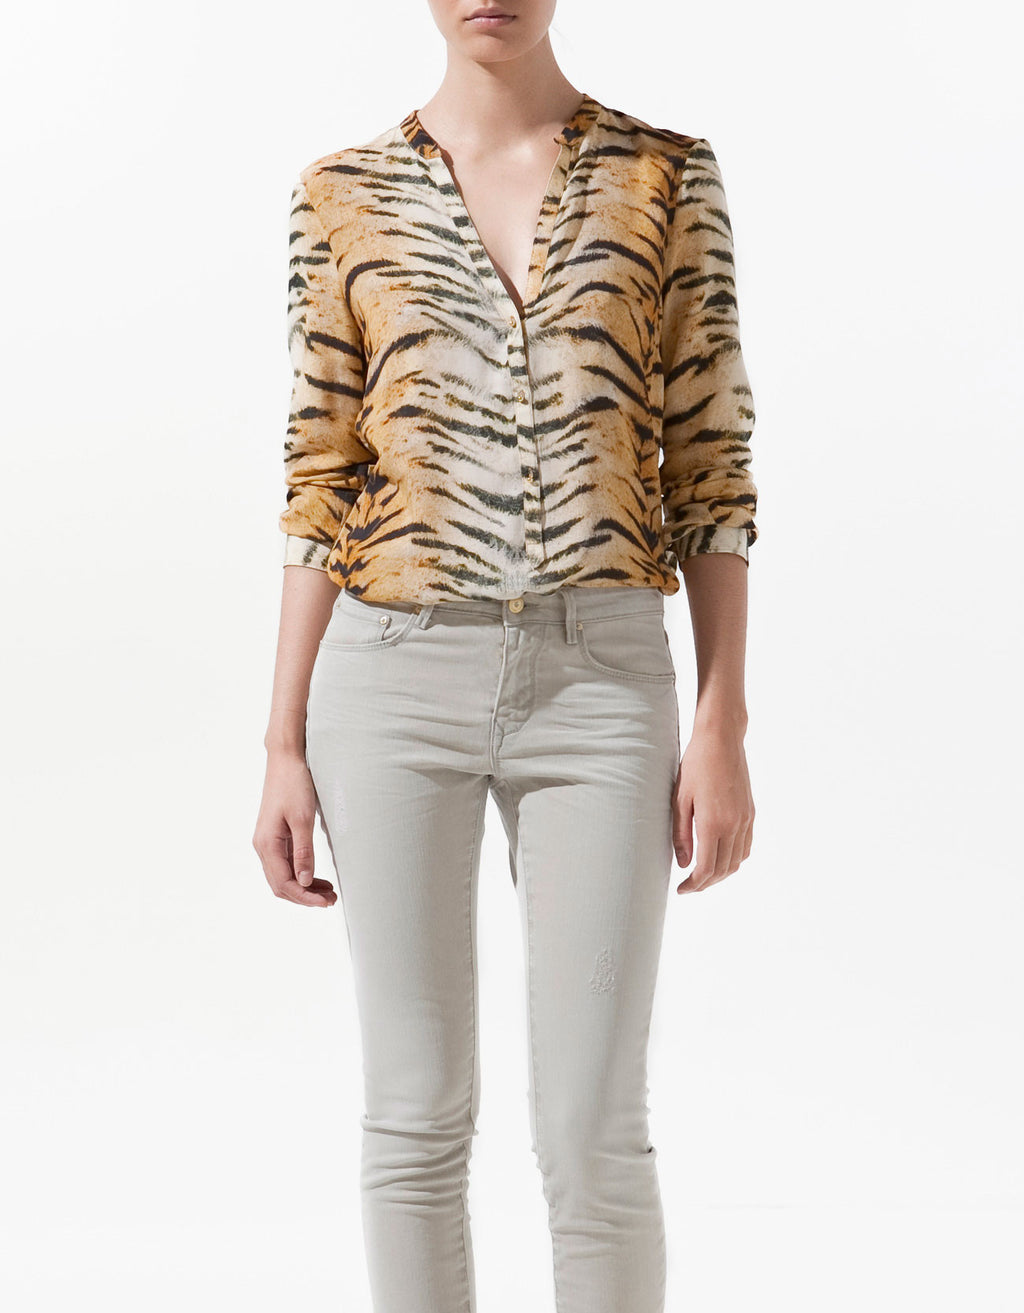 Zara Long Sleeve Tiger Print Chiffon Blouse Size XL